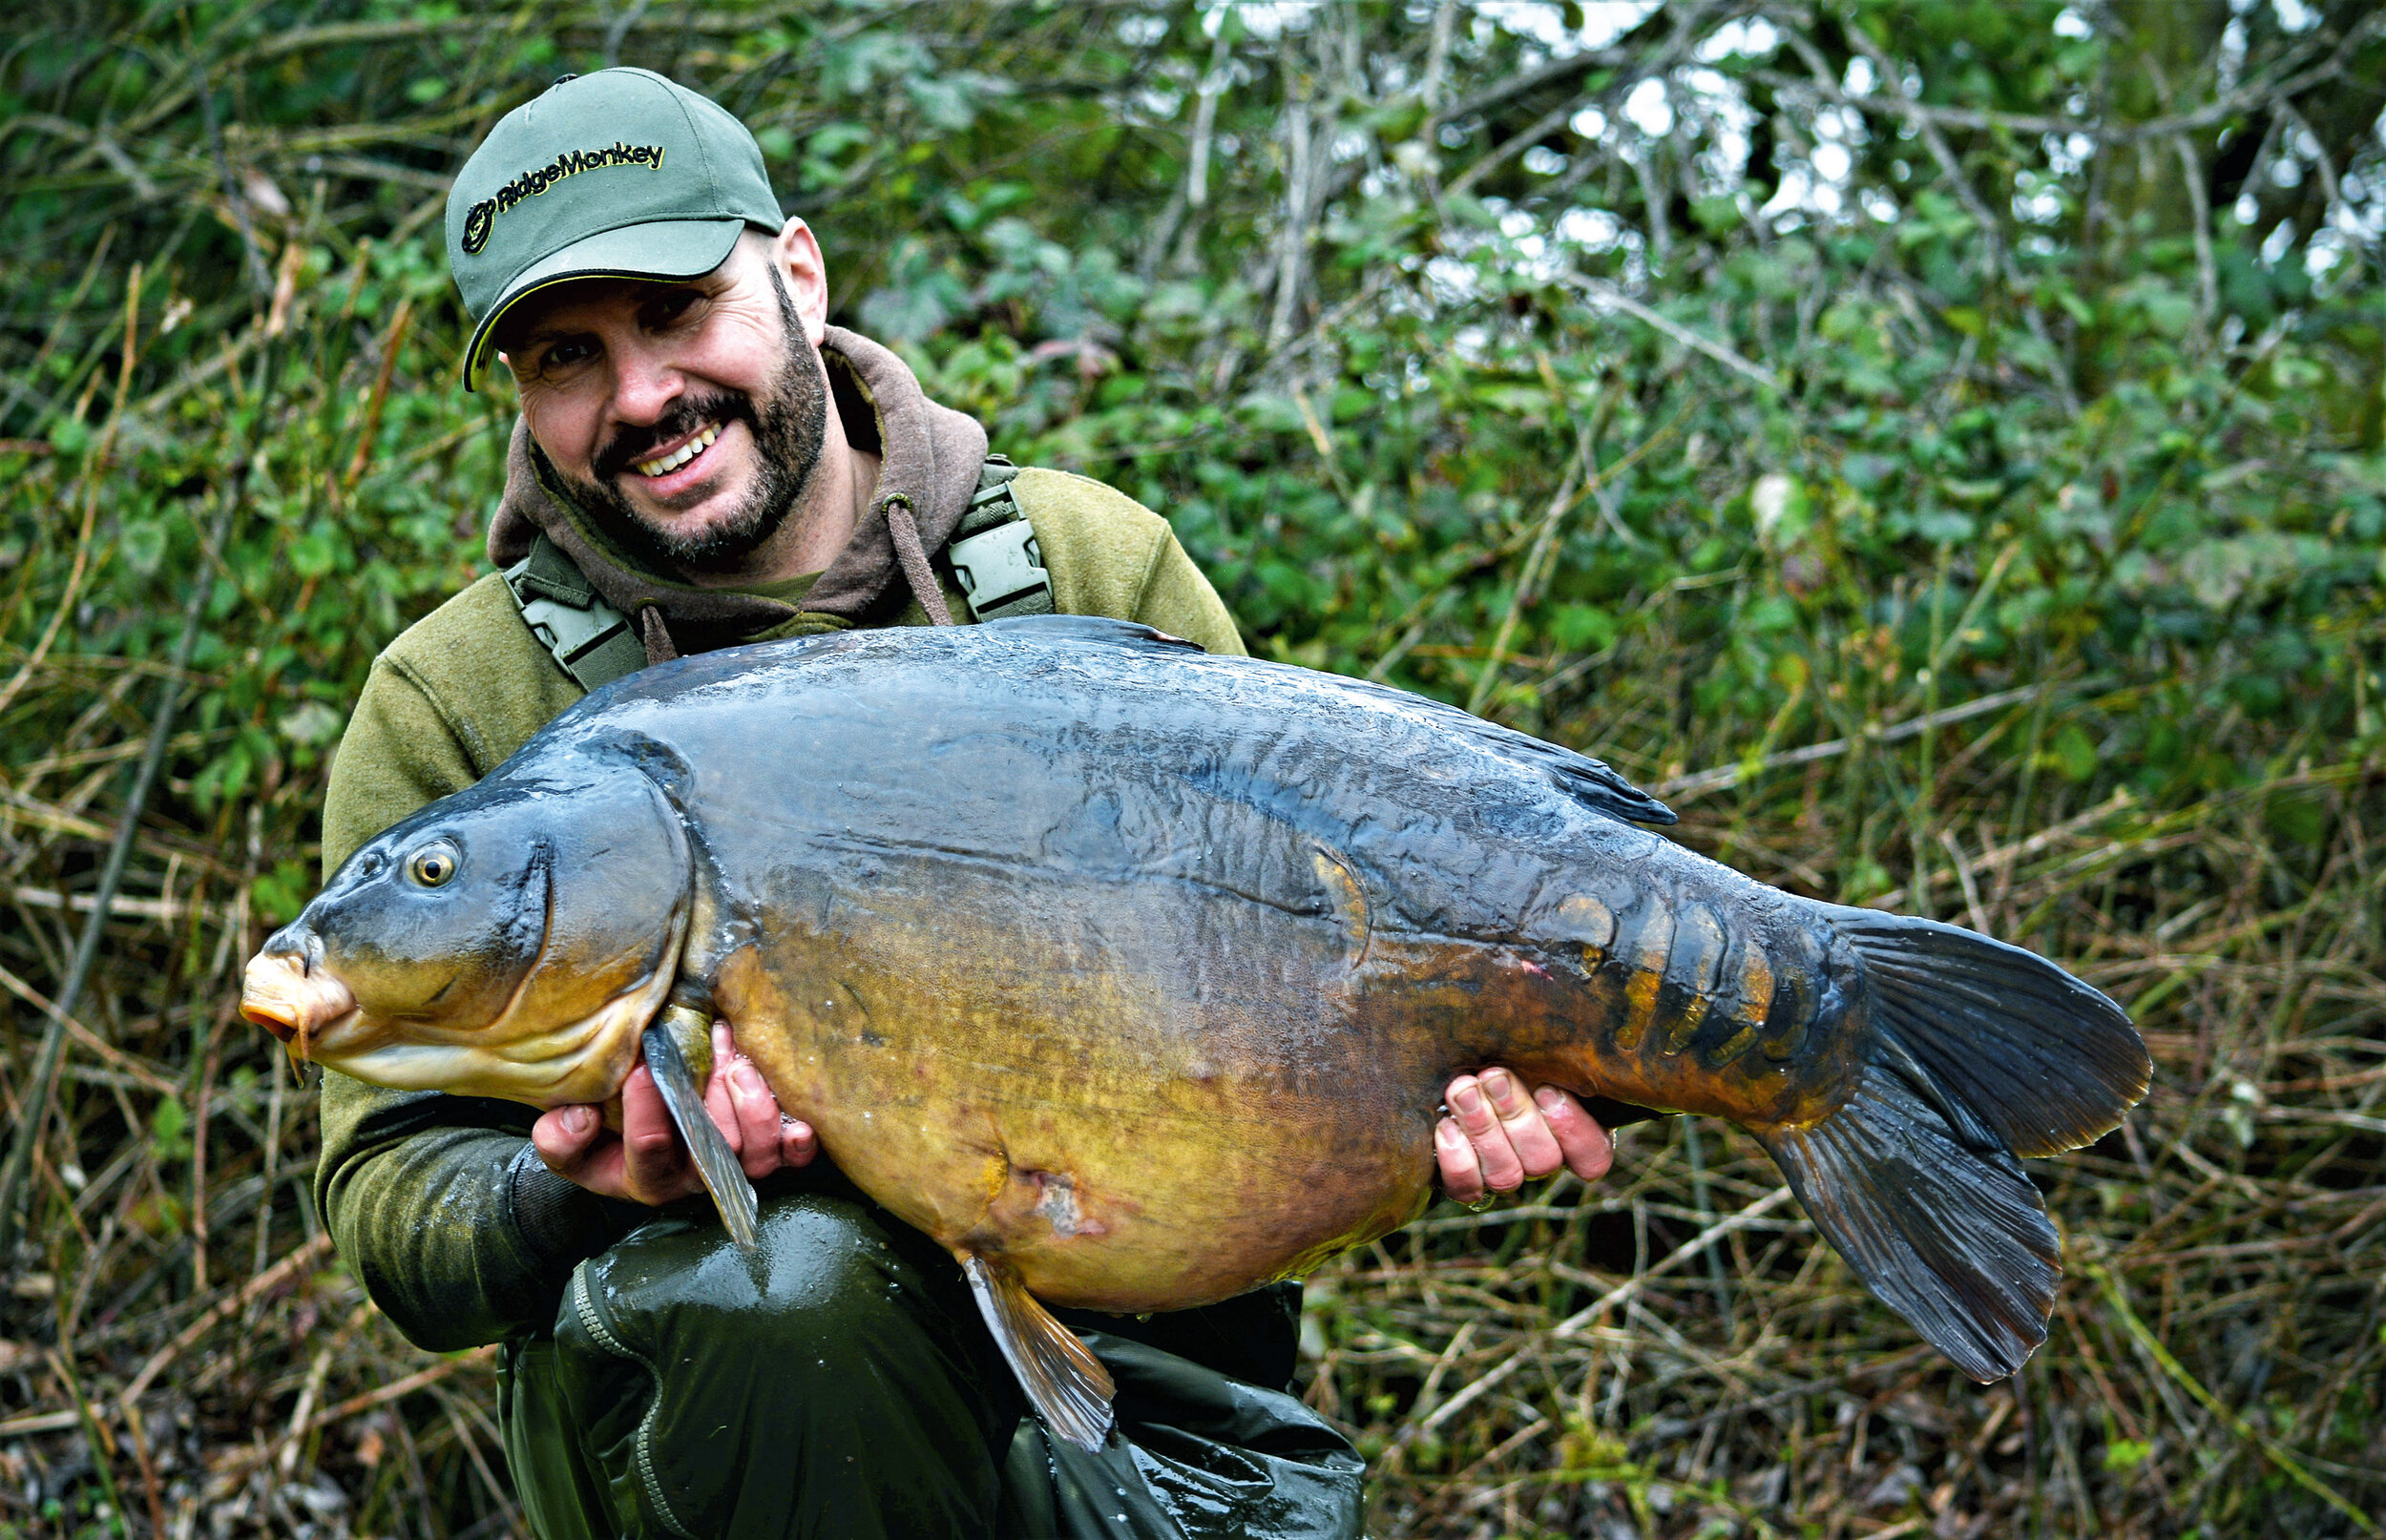 A stunning Horton 50 for Dave, taken on his favourite reverse combi-rig